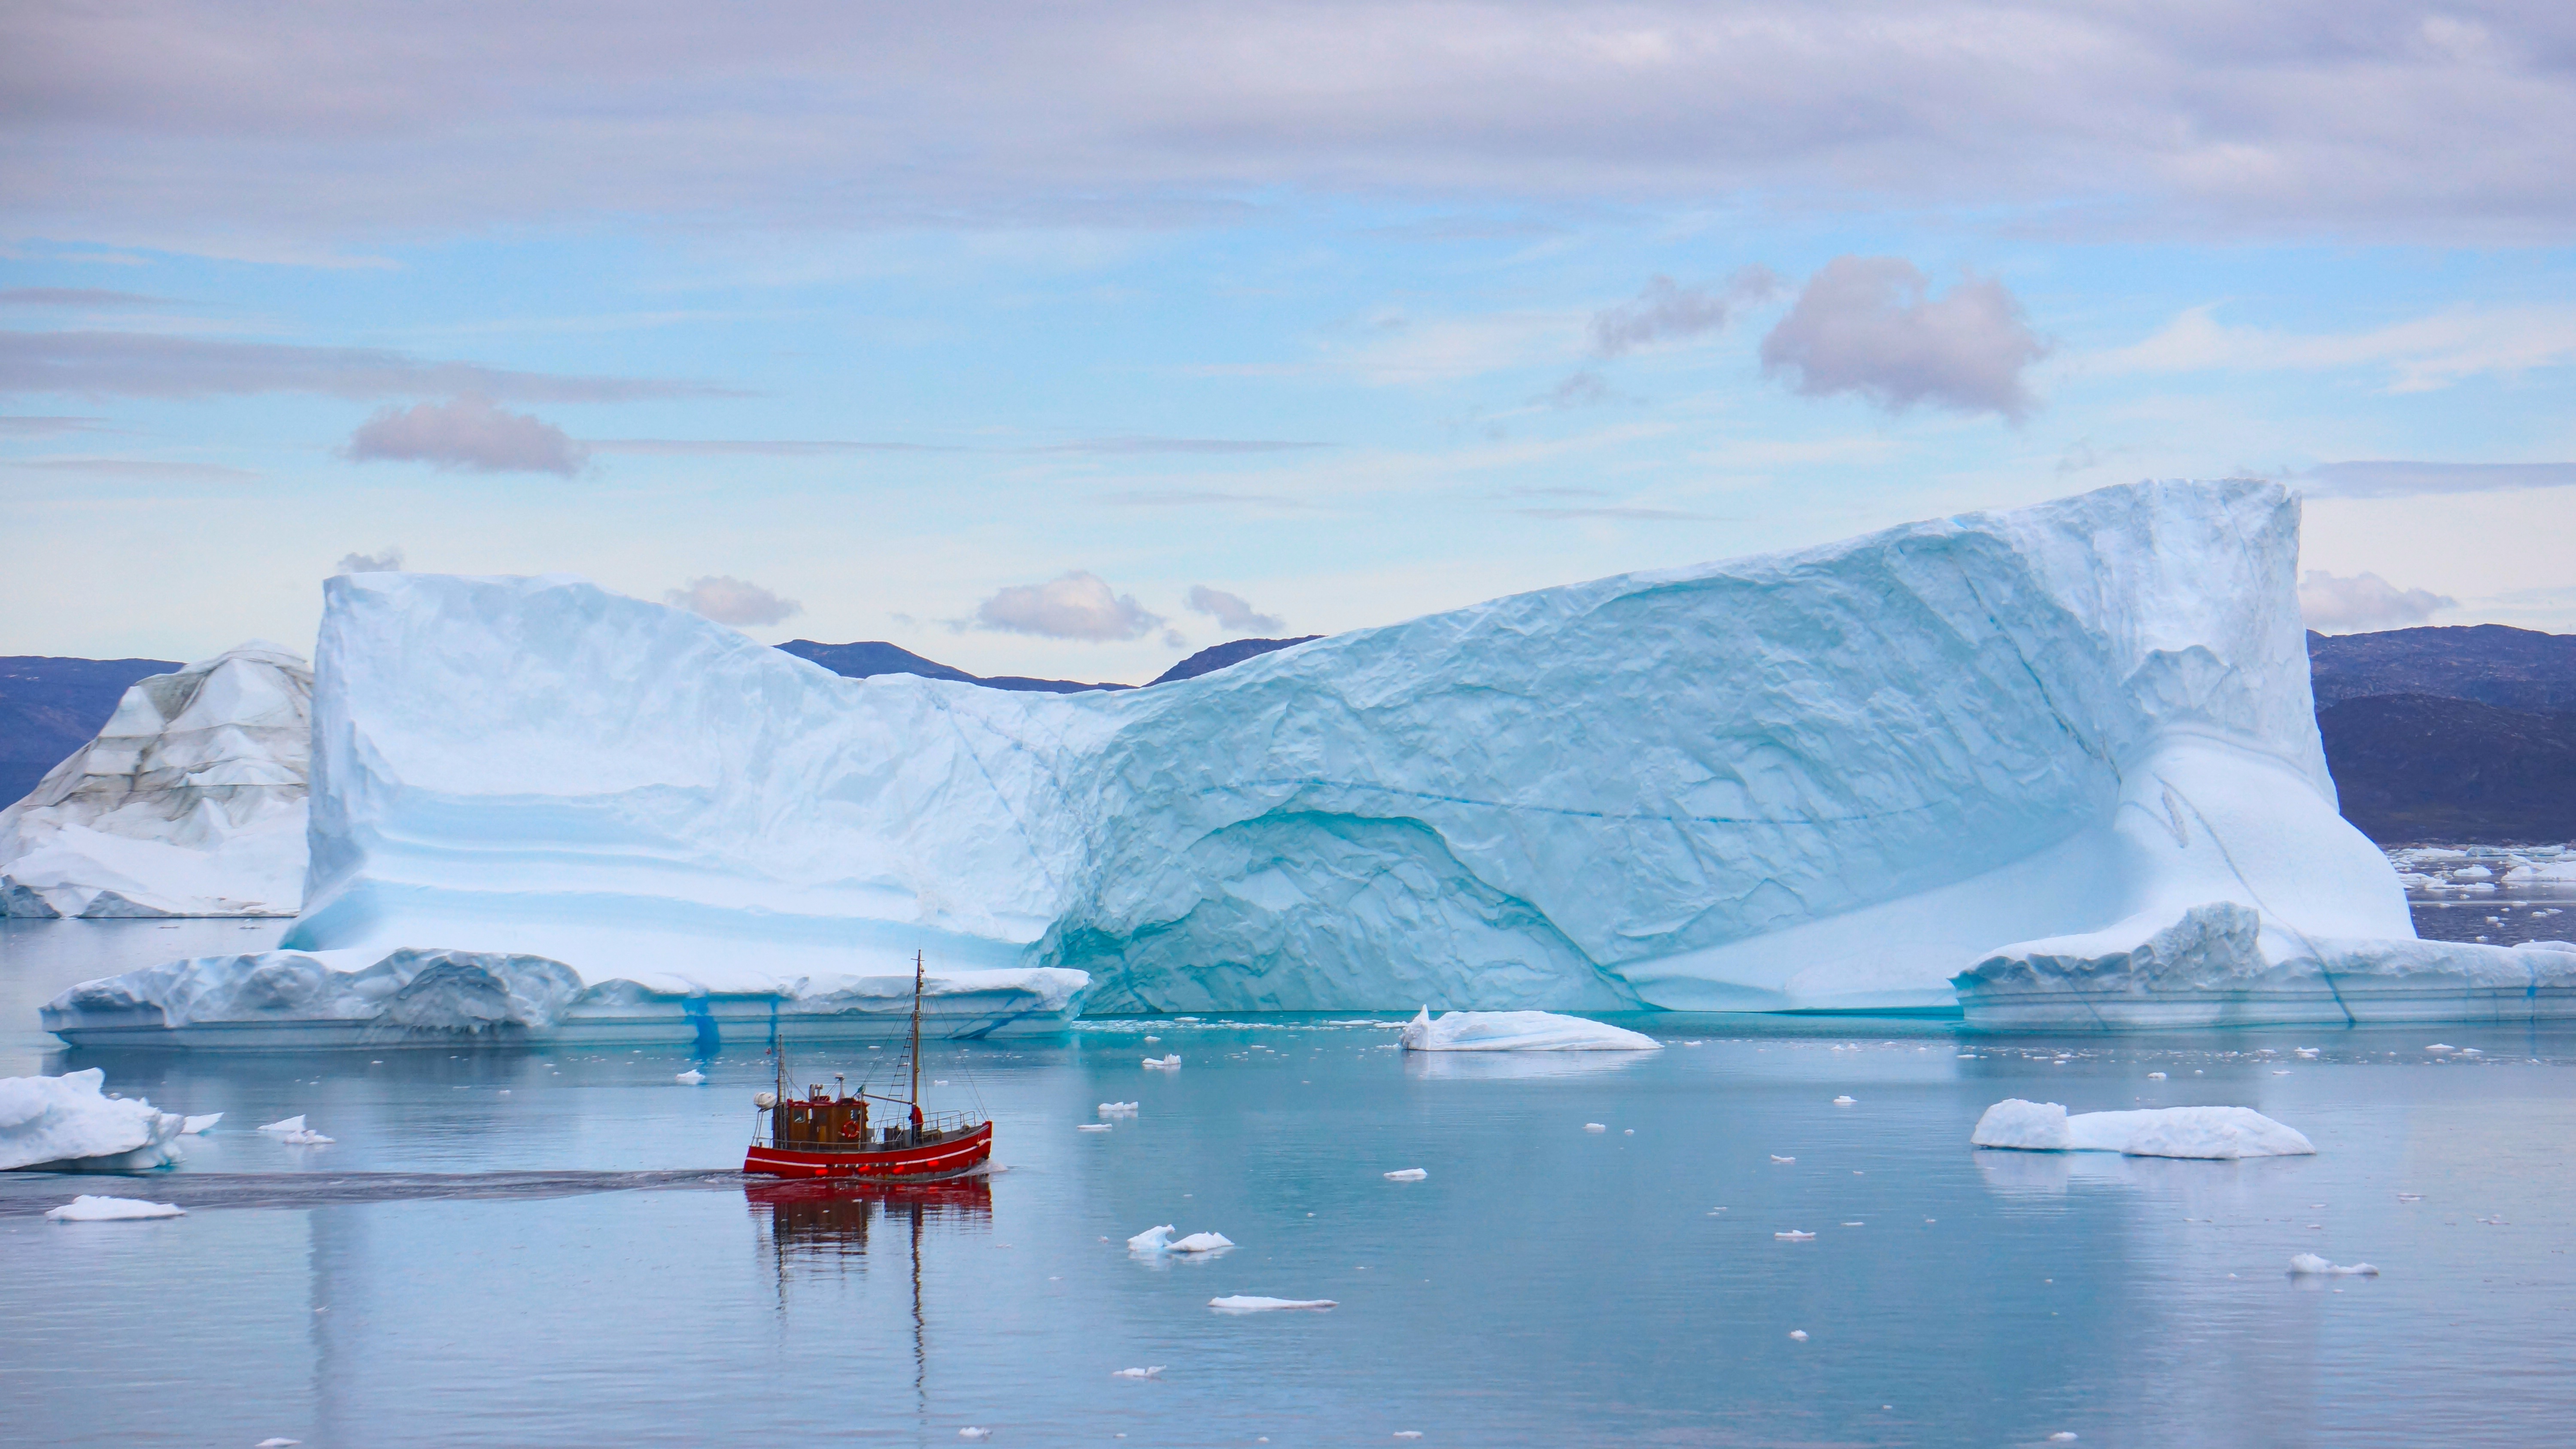 A Boat Spotted on the Way to Ilulissat, Greenland